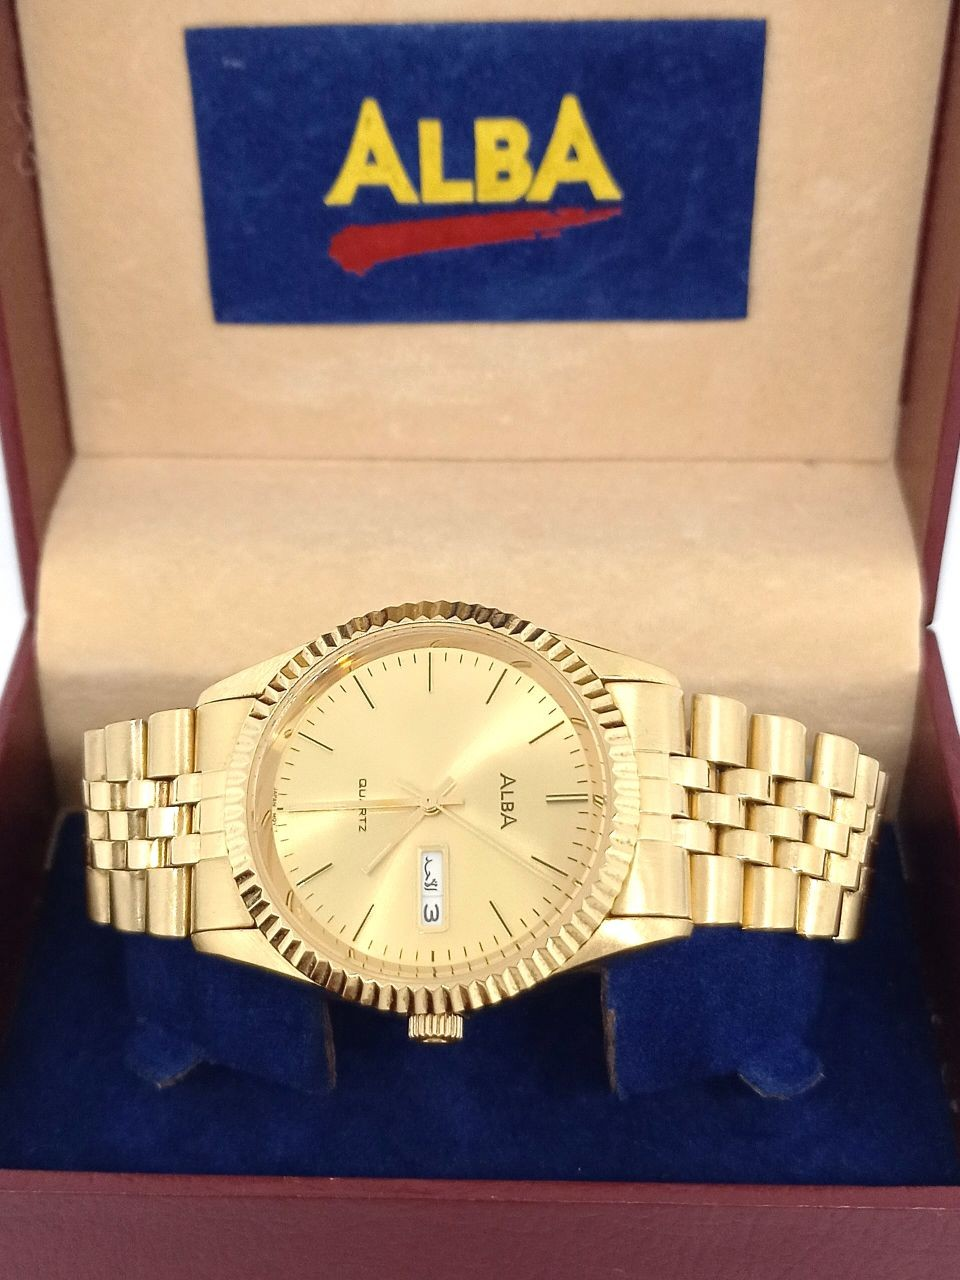 Alba V733-X018 gold plated watch